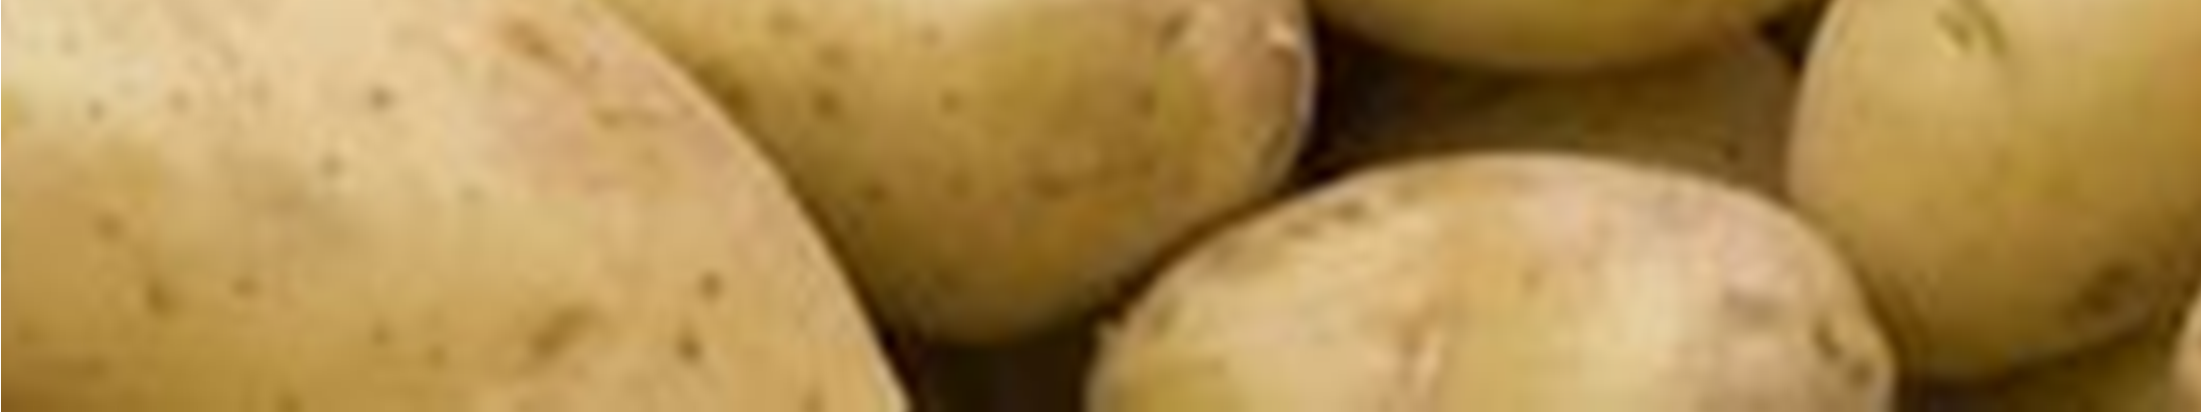 ipot project Industrial Potato monitoring for the Belgian